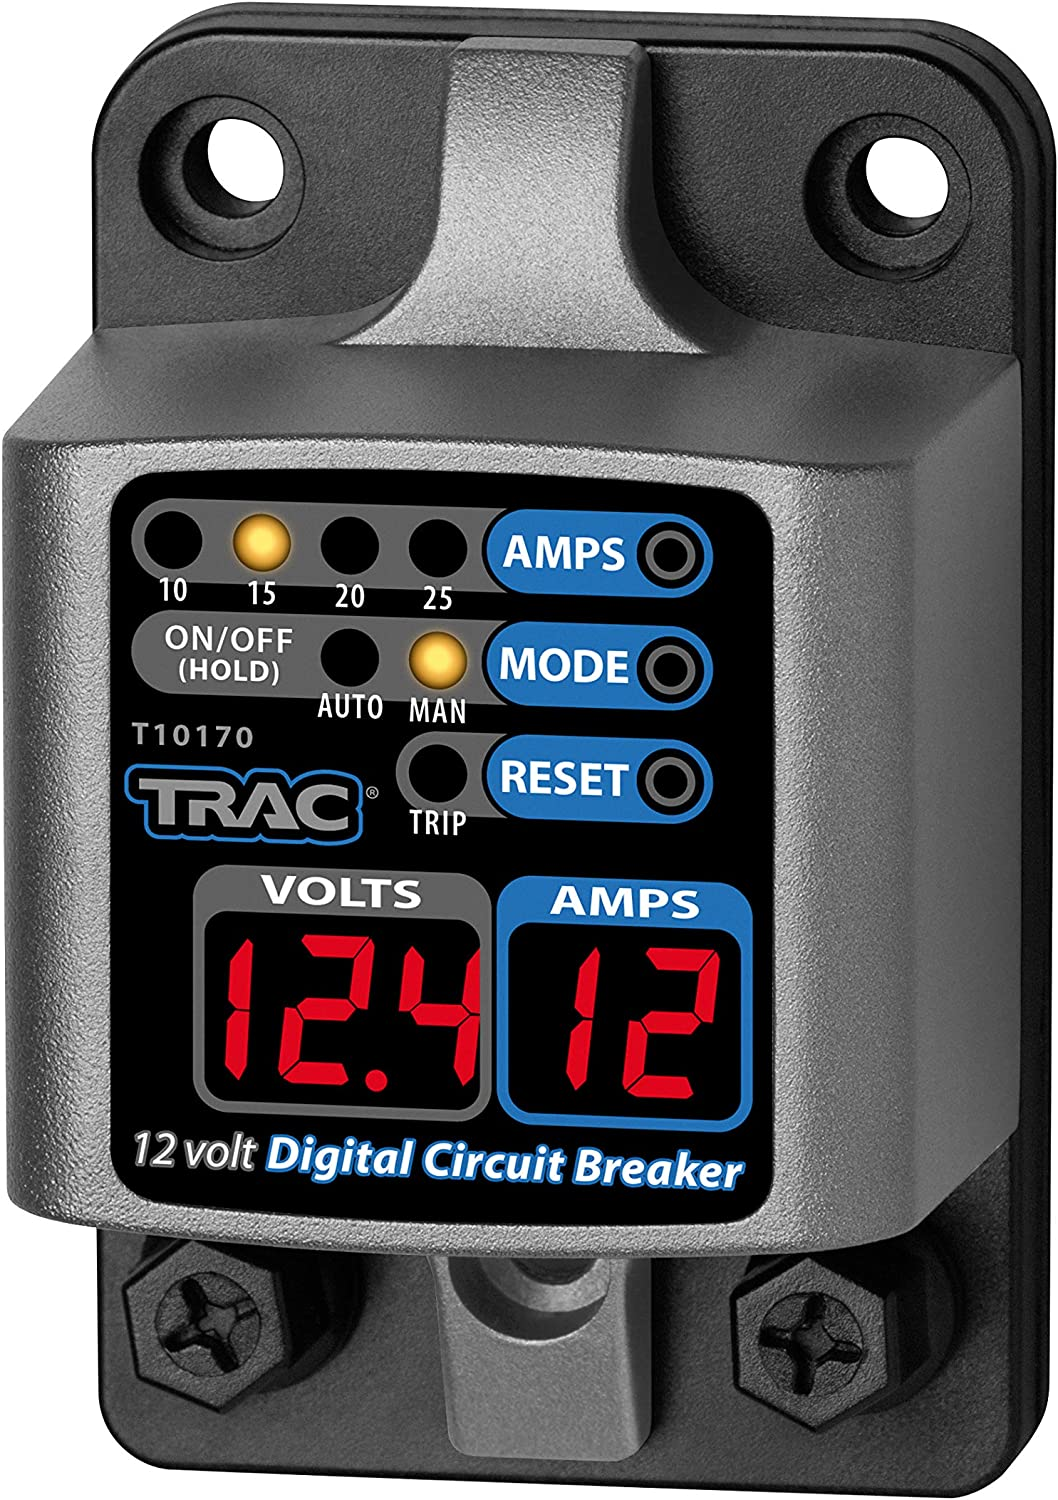 Trac Recommended Outdoors Digital Circuit Breaker Miami Mall - Amp 10-25 Display with